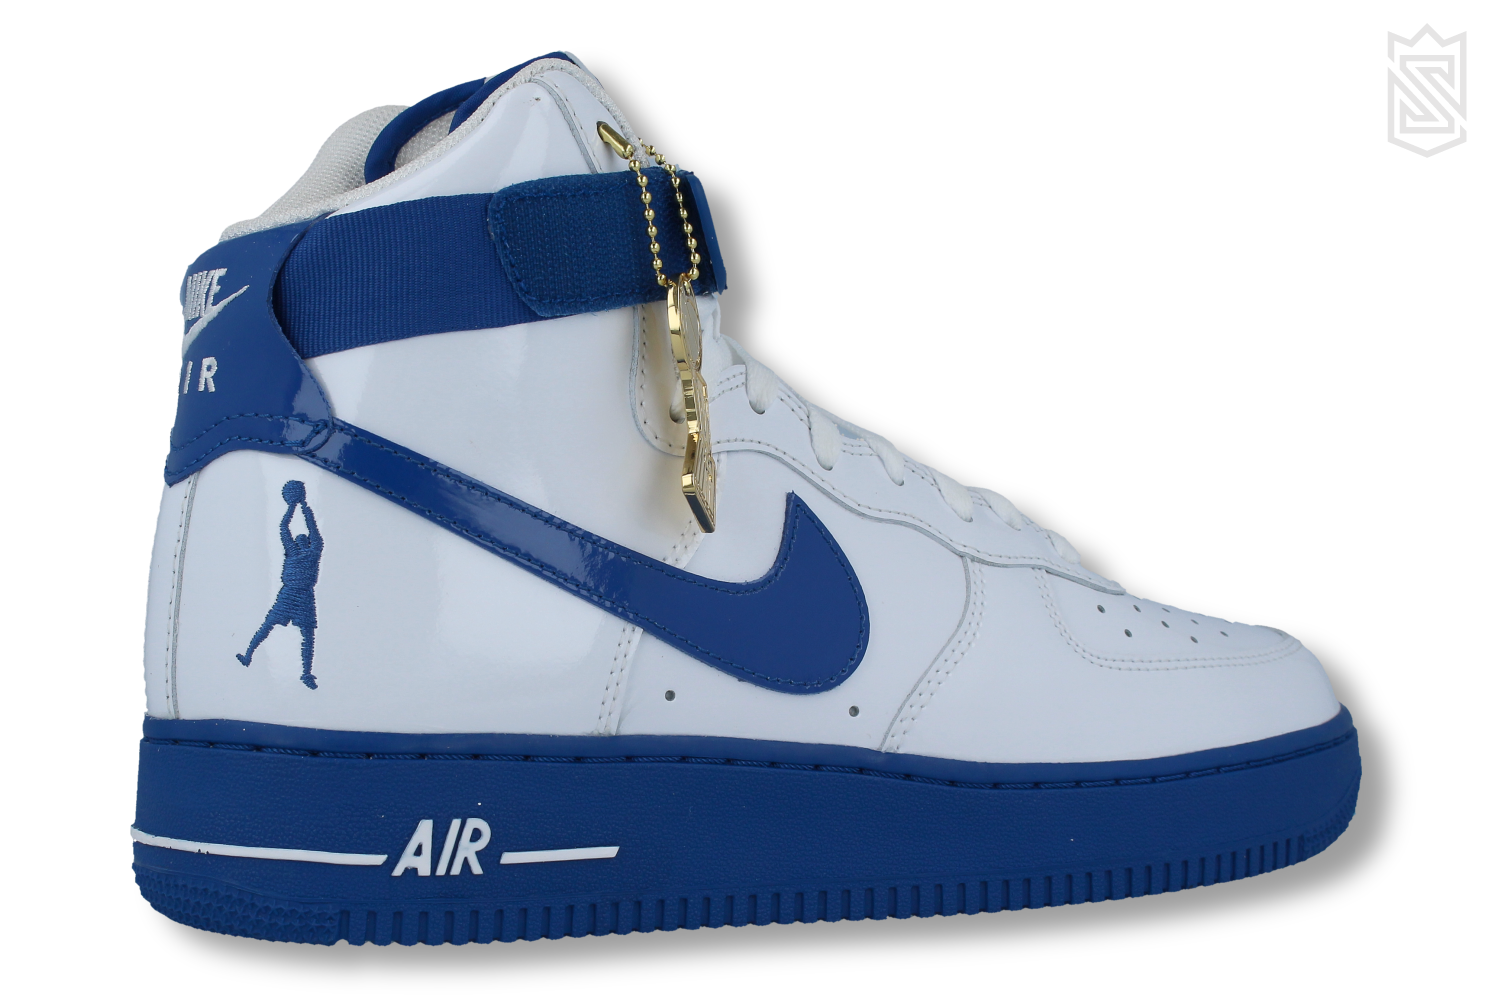 Air Force 1 High Retro CT16 QS - Rude Awakaning - Schrittmacher Shop